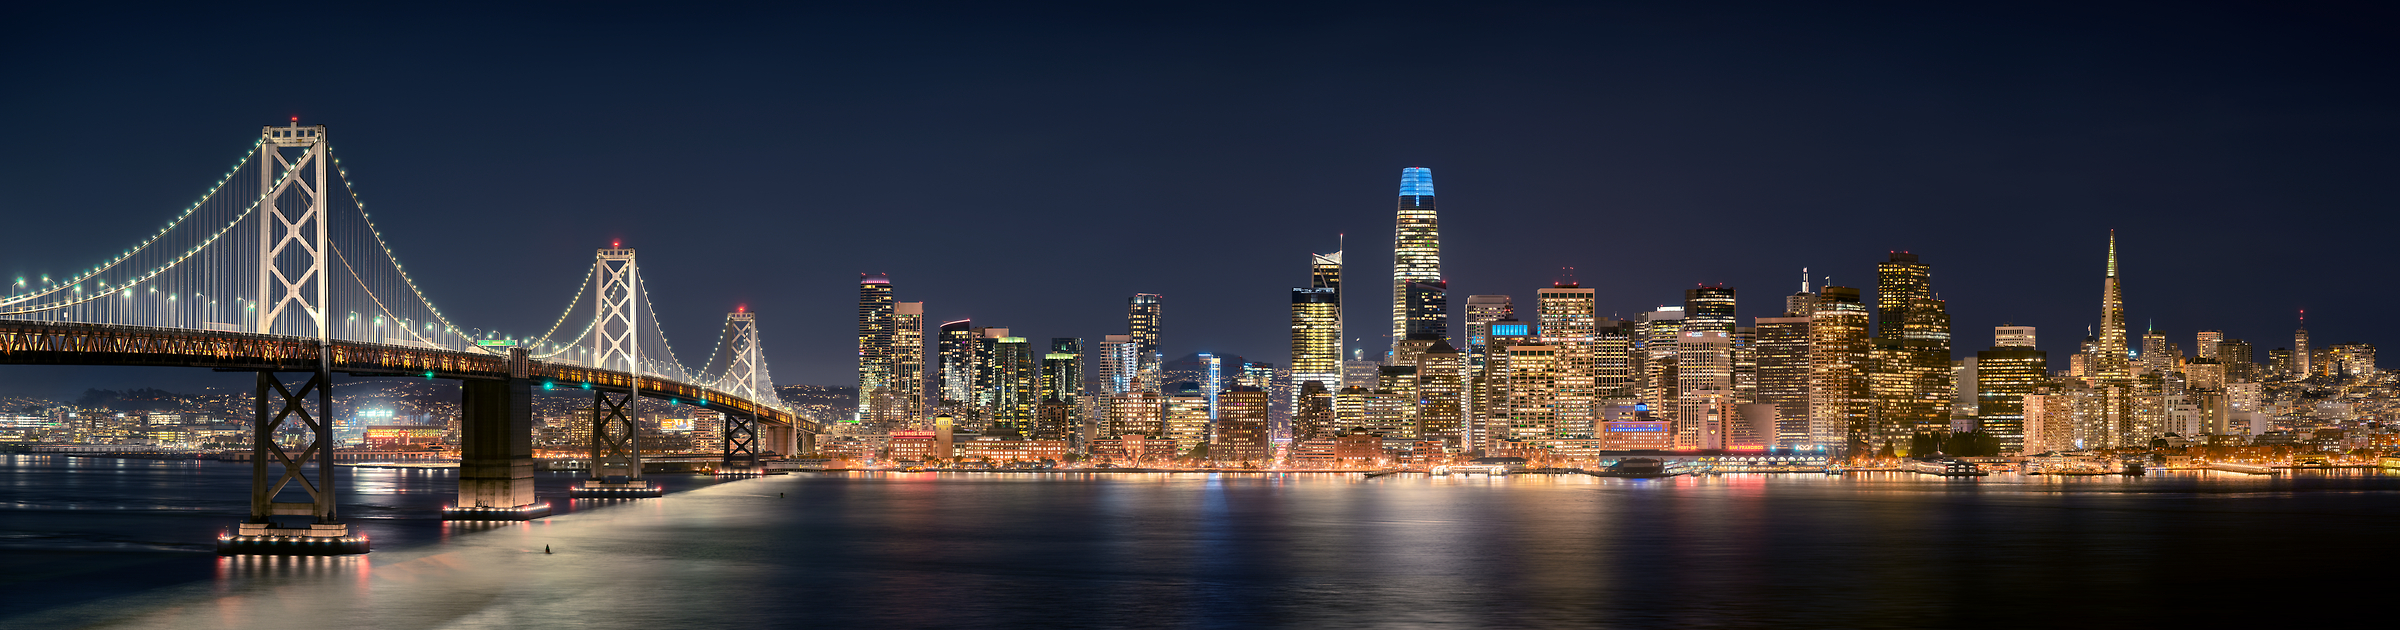 686 megapixels! A very high resolution, large-format VAST photo print of the San Francisco skyline and the Bay Bridge at night; cityscape photograph created by Jim Tarpo in Yerba Buena Island and Treasure Island, San Francisco, California